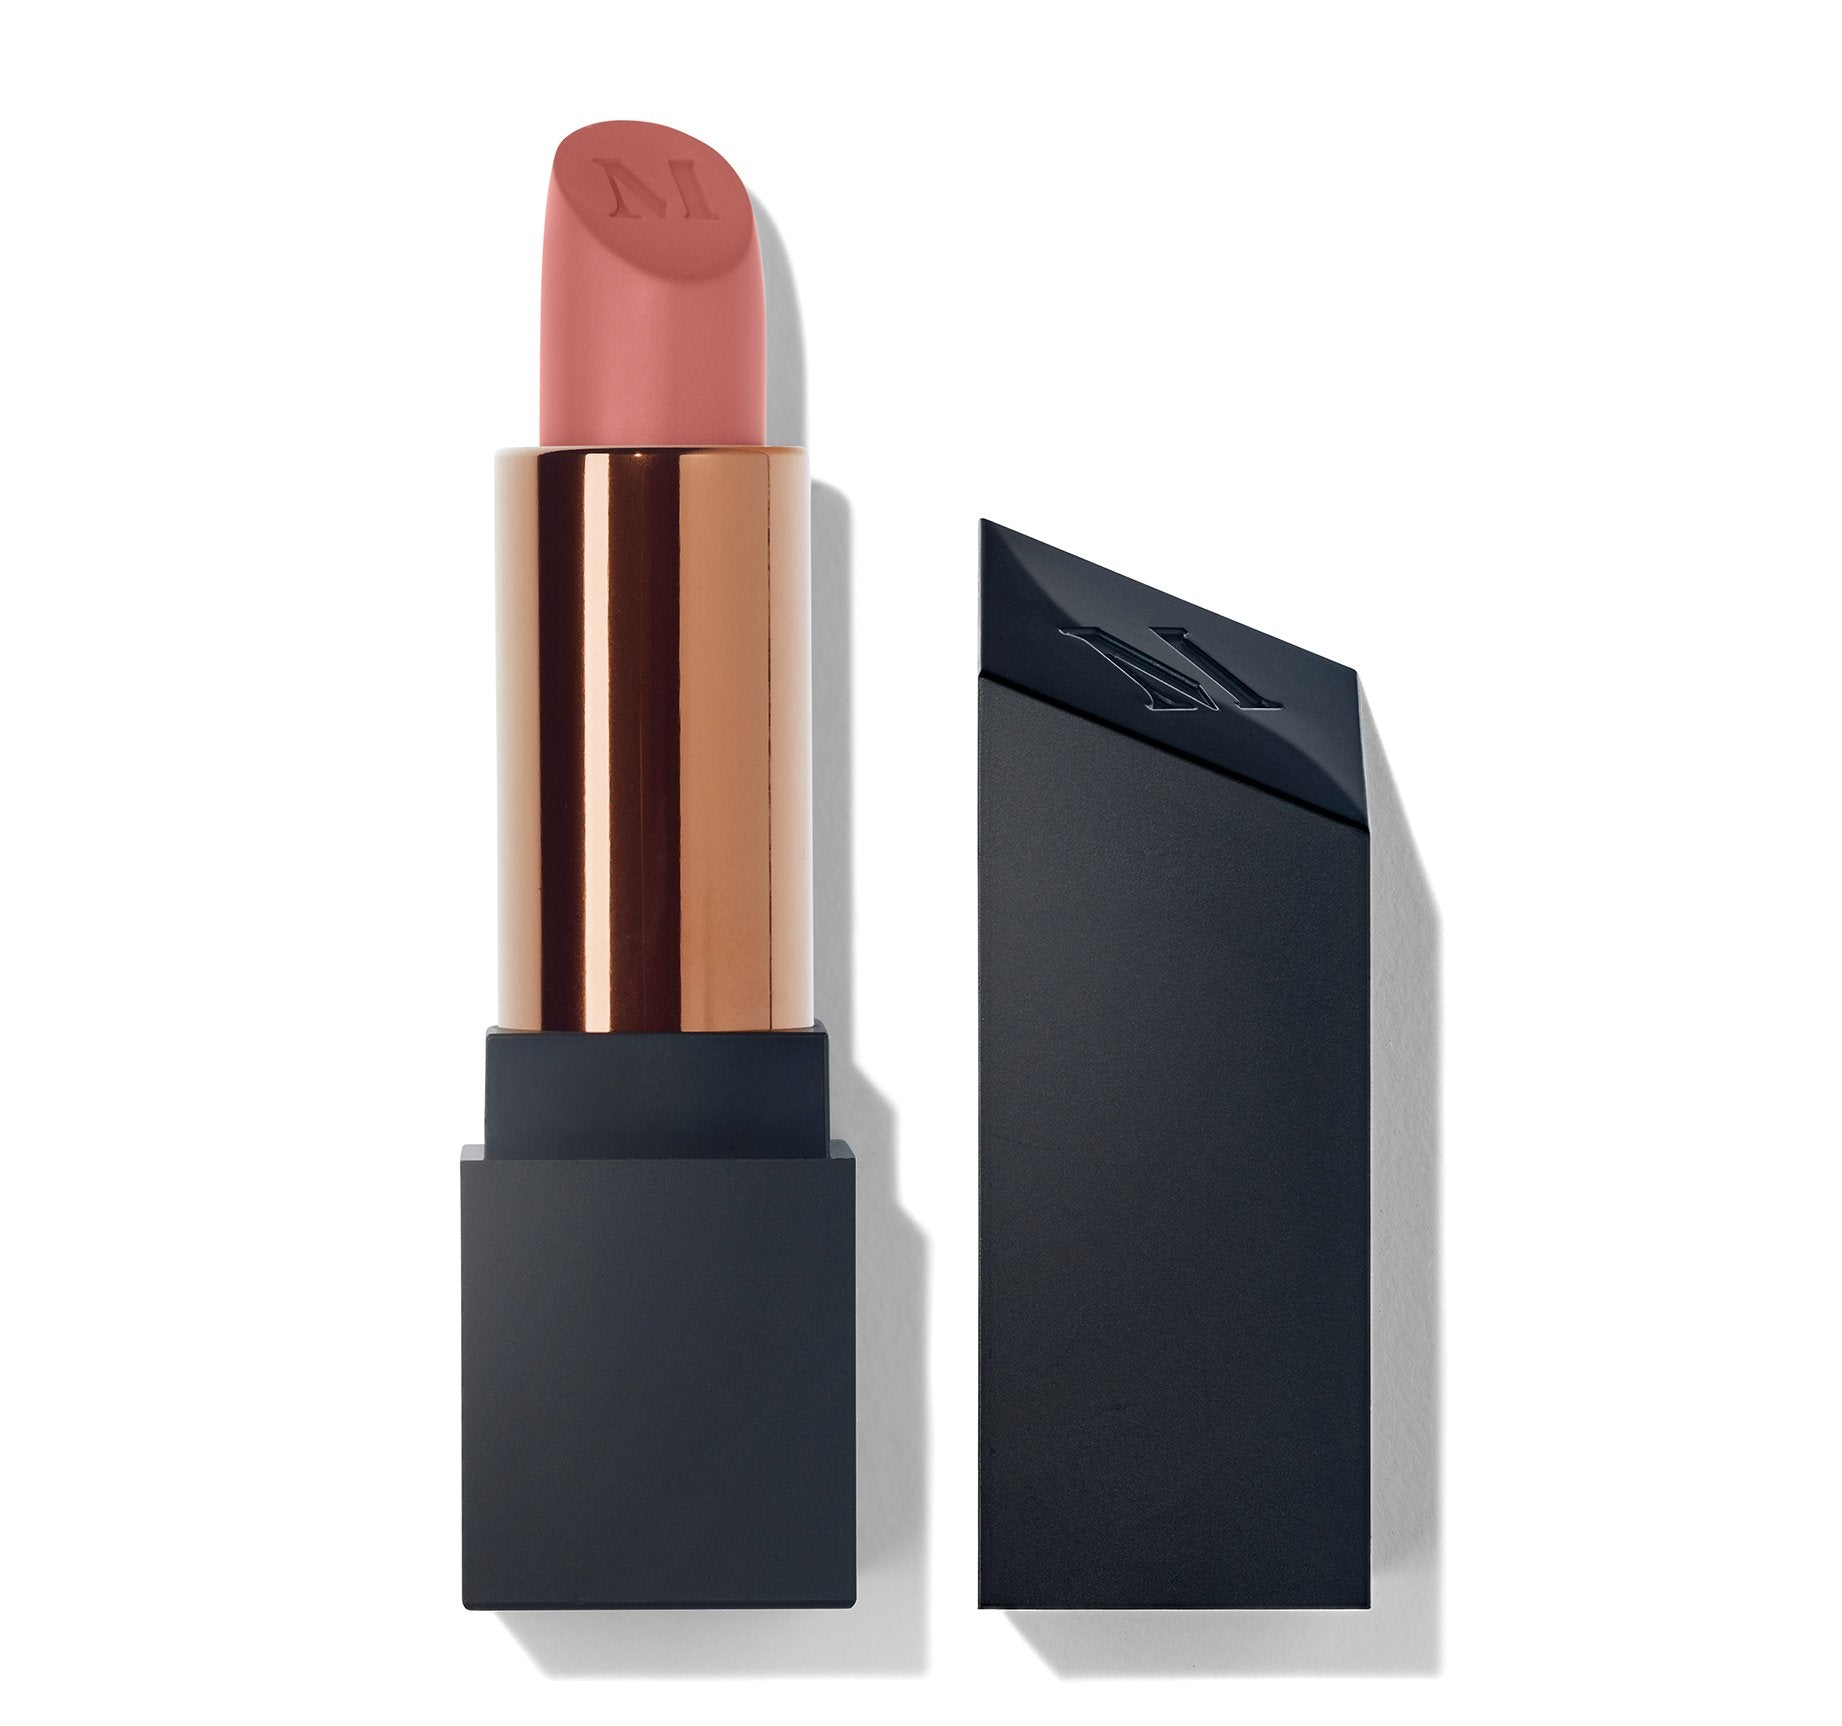 MEGA MATTE LIPSTICK - SINGLE AF, view larger image